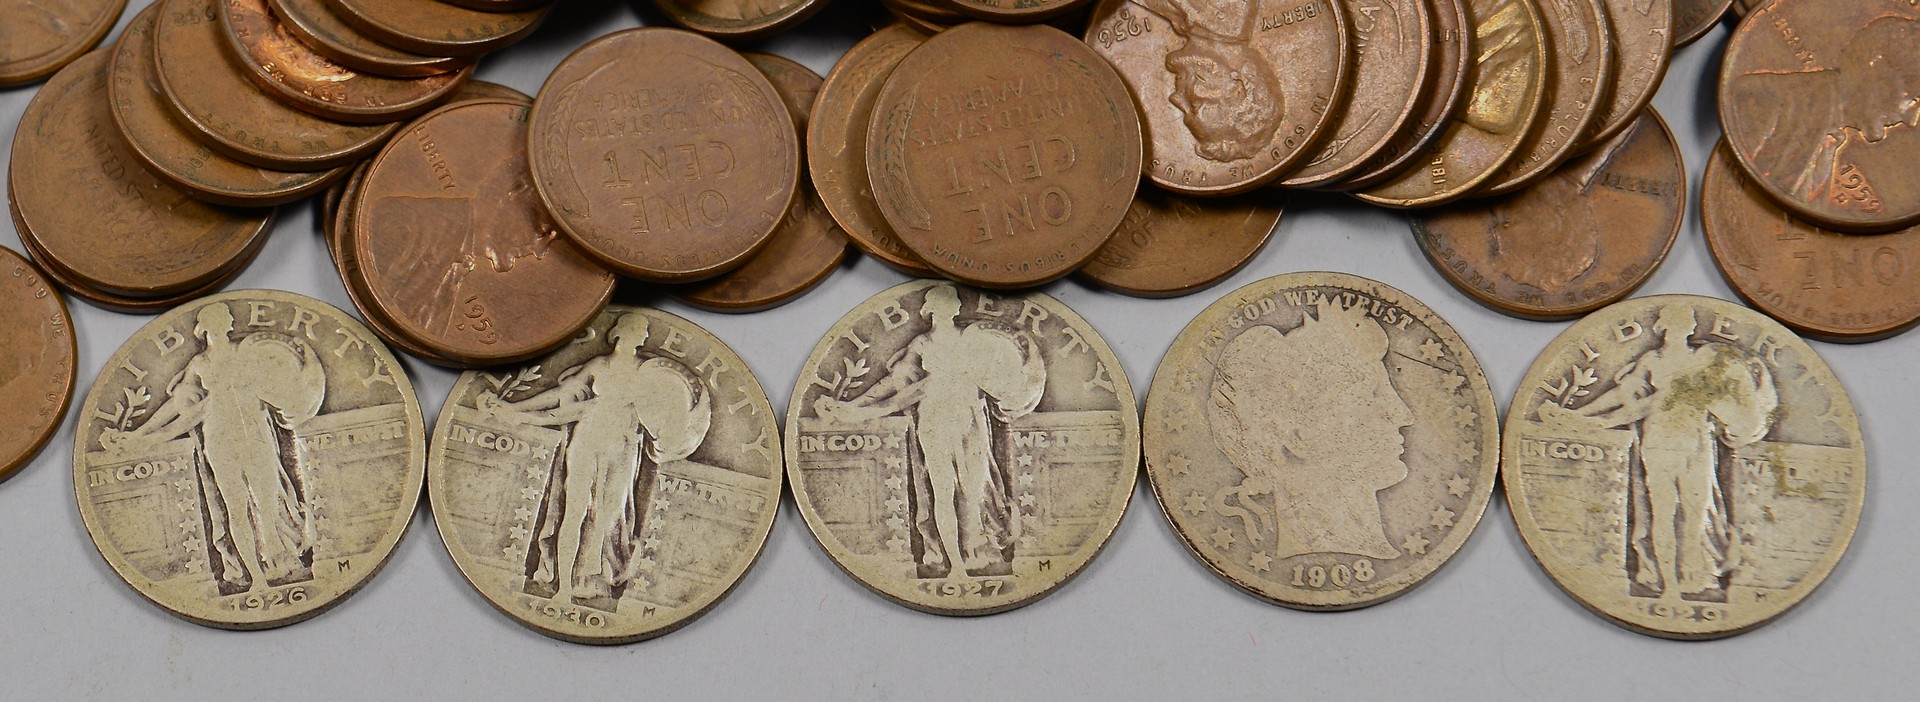 Lot 902: Large Grouping of US Coin Collection Sets & Others